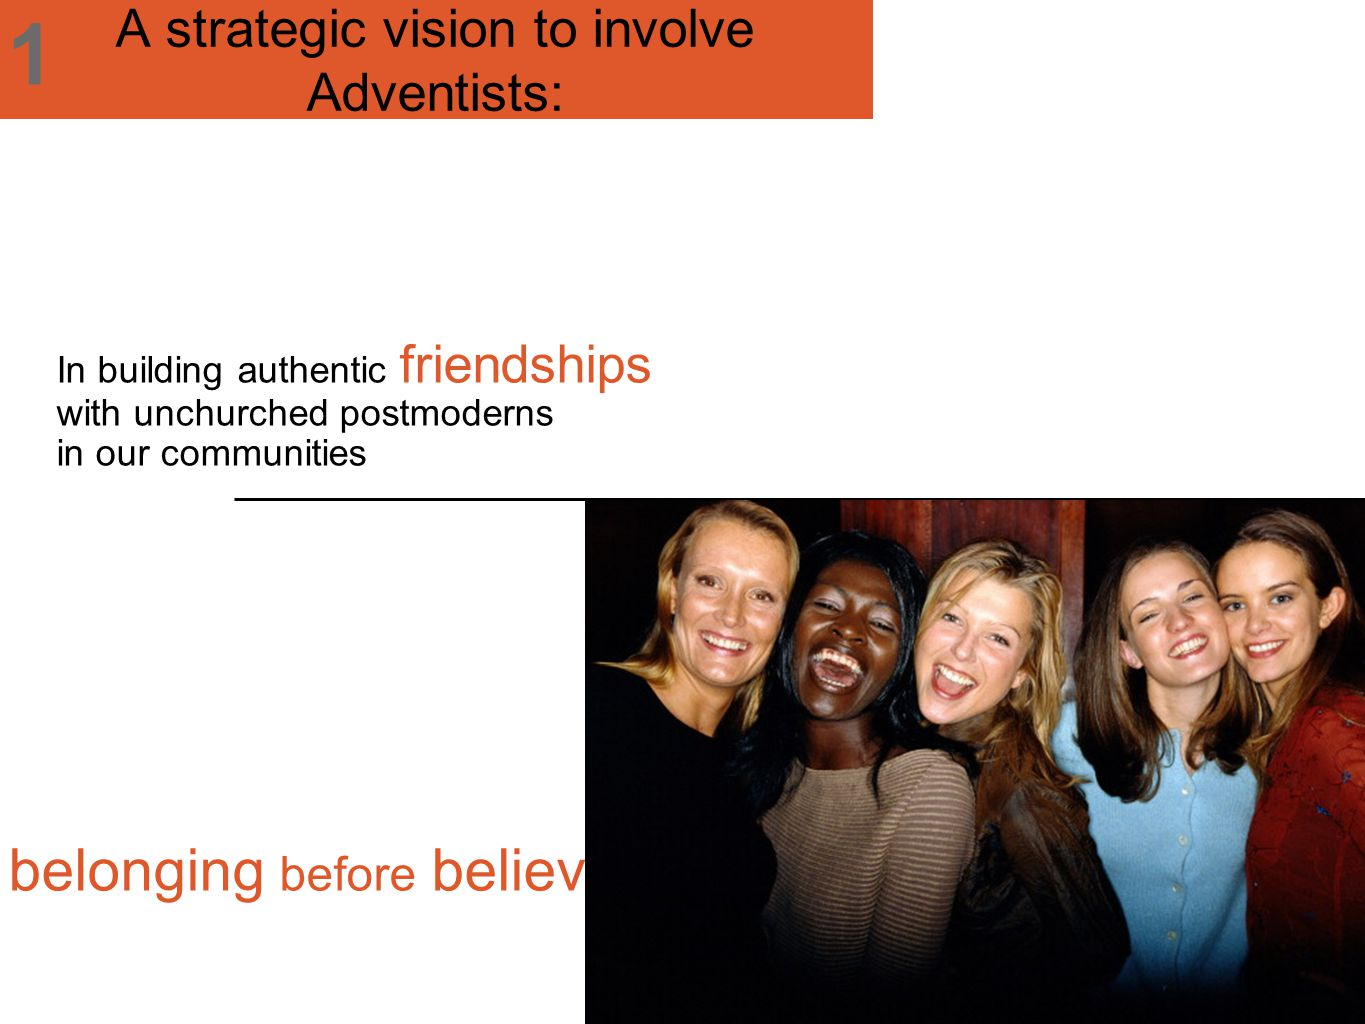 A strategic vision to involve Adventists: In building authentic friendships with unchurched postmoderns in our communities belonging before believing 1